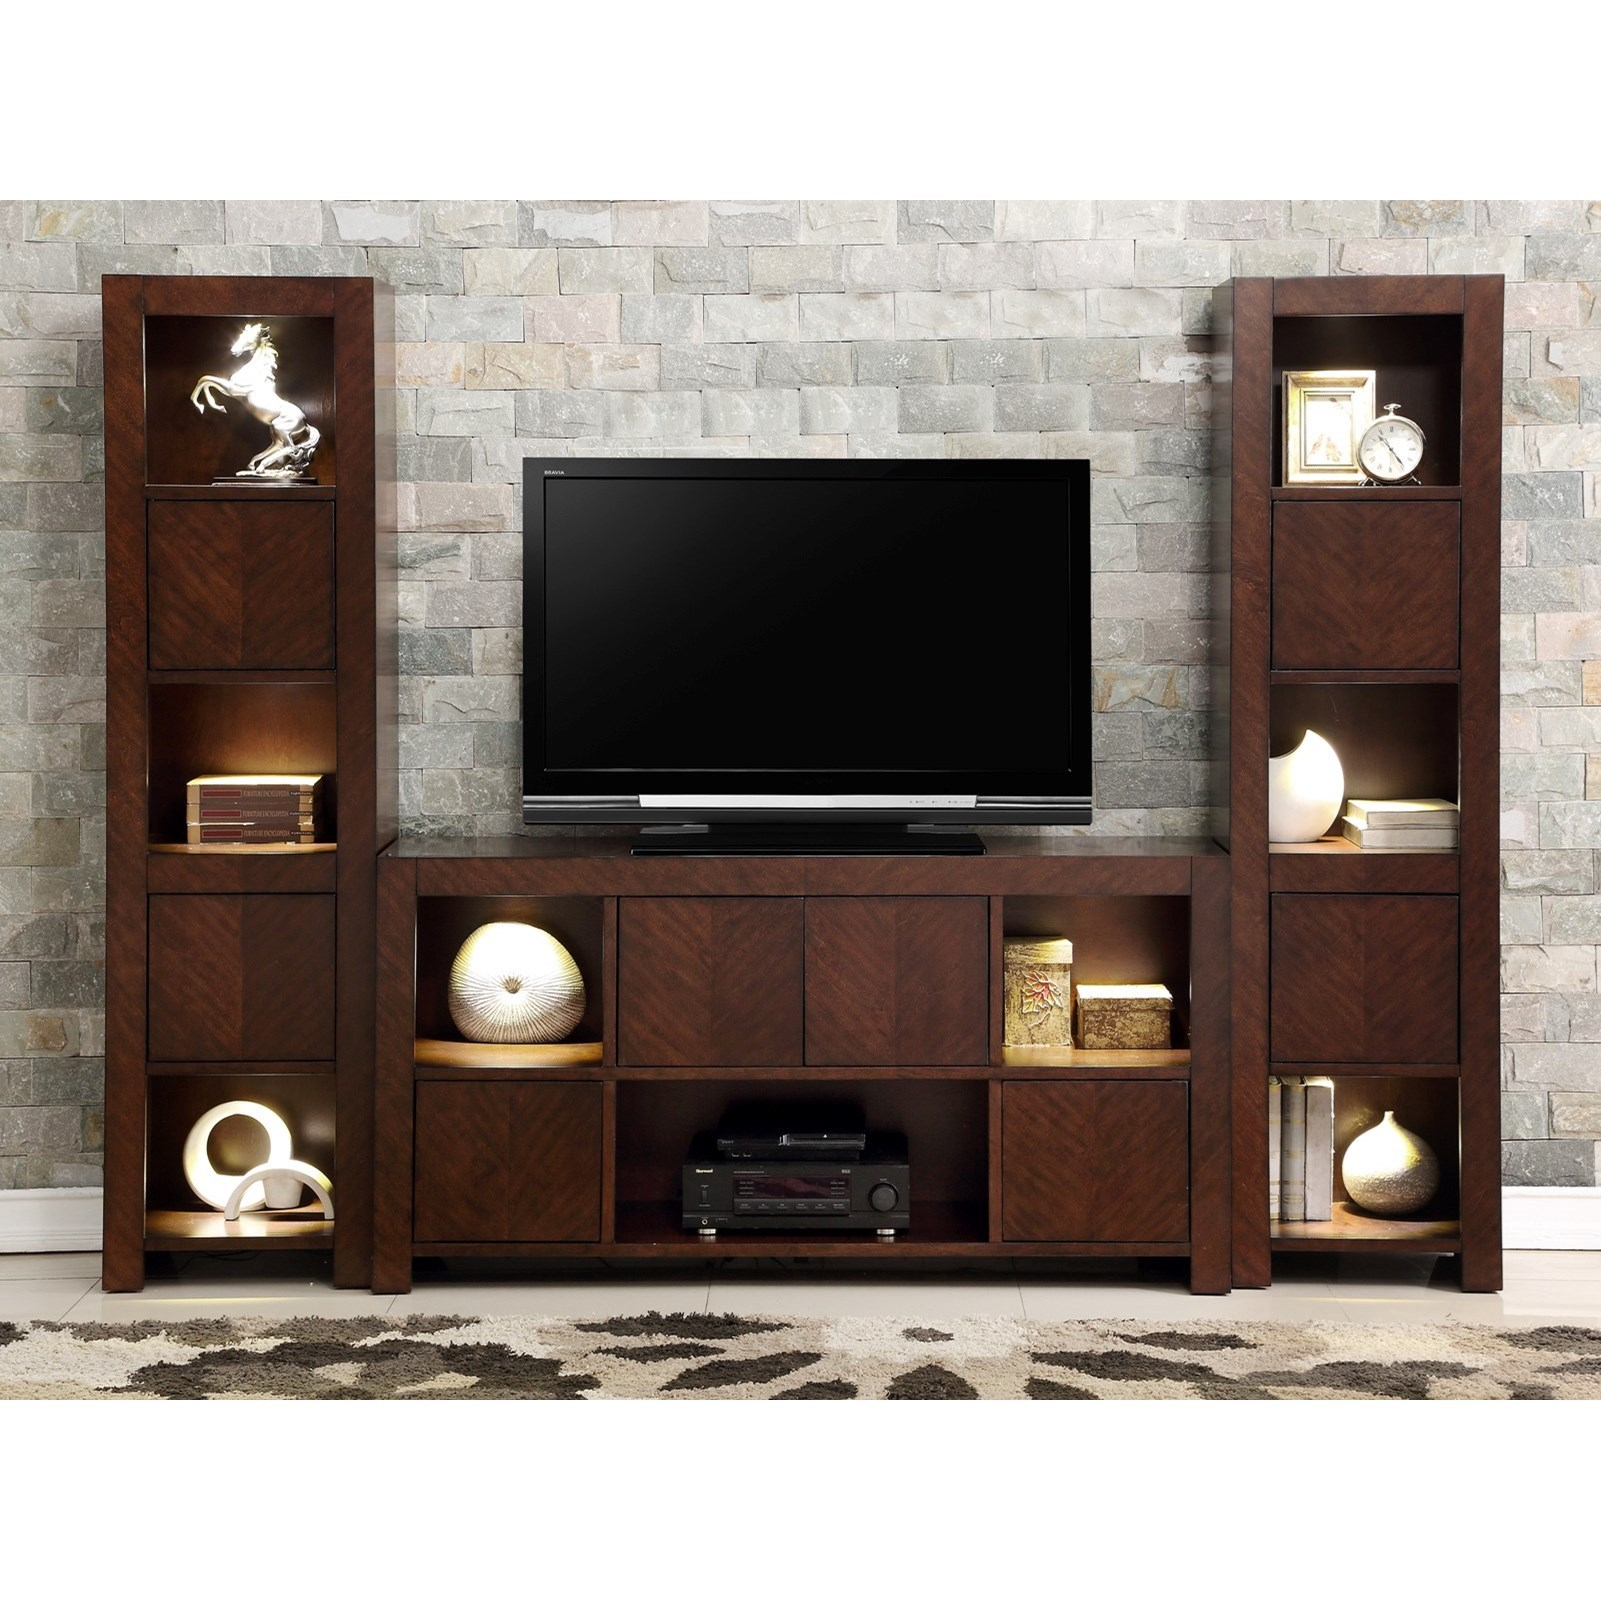 City Lights Wall Unit with 2-Piers